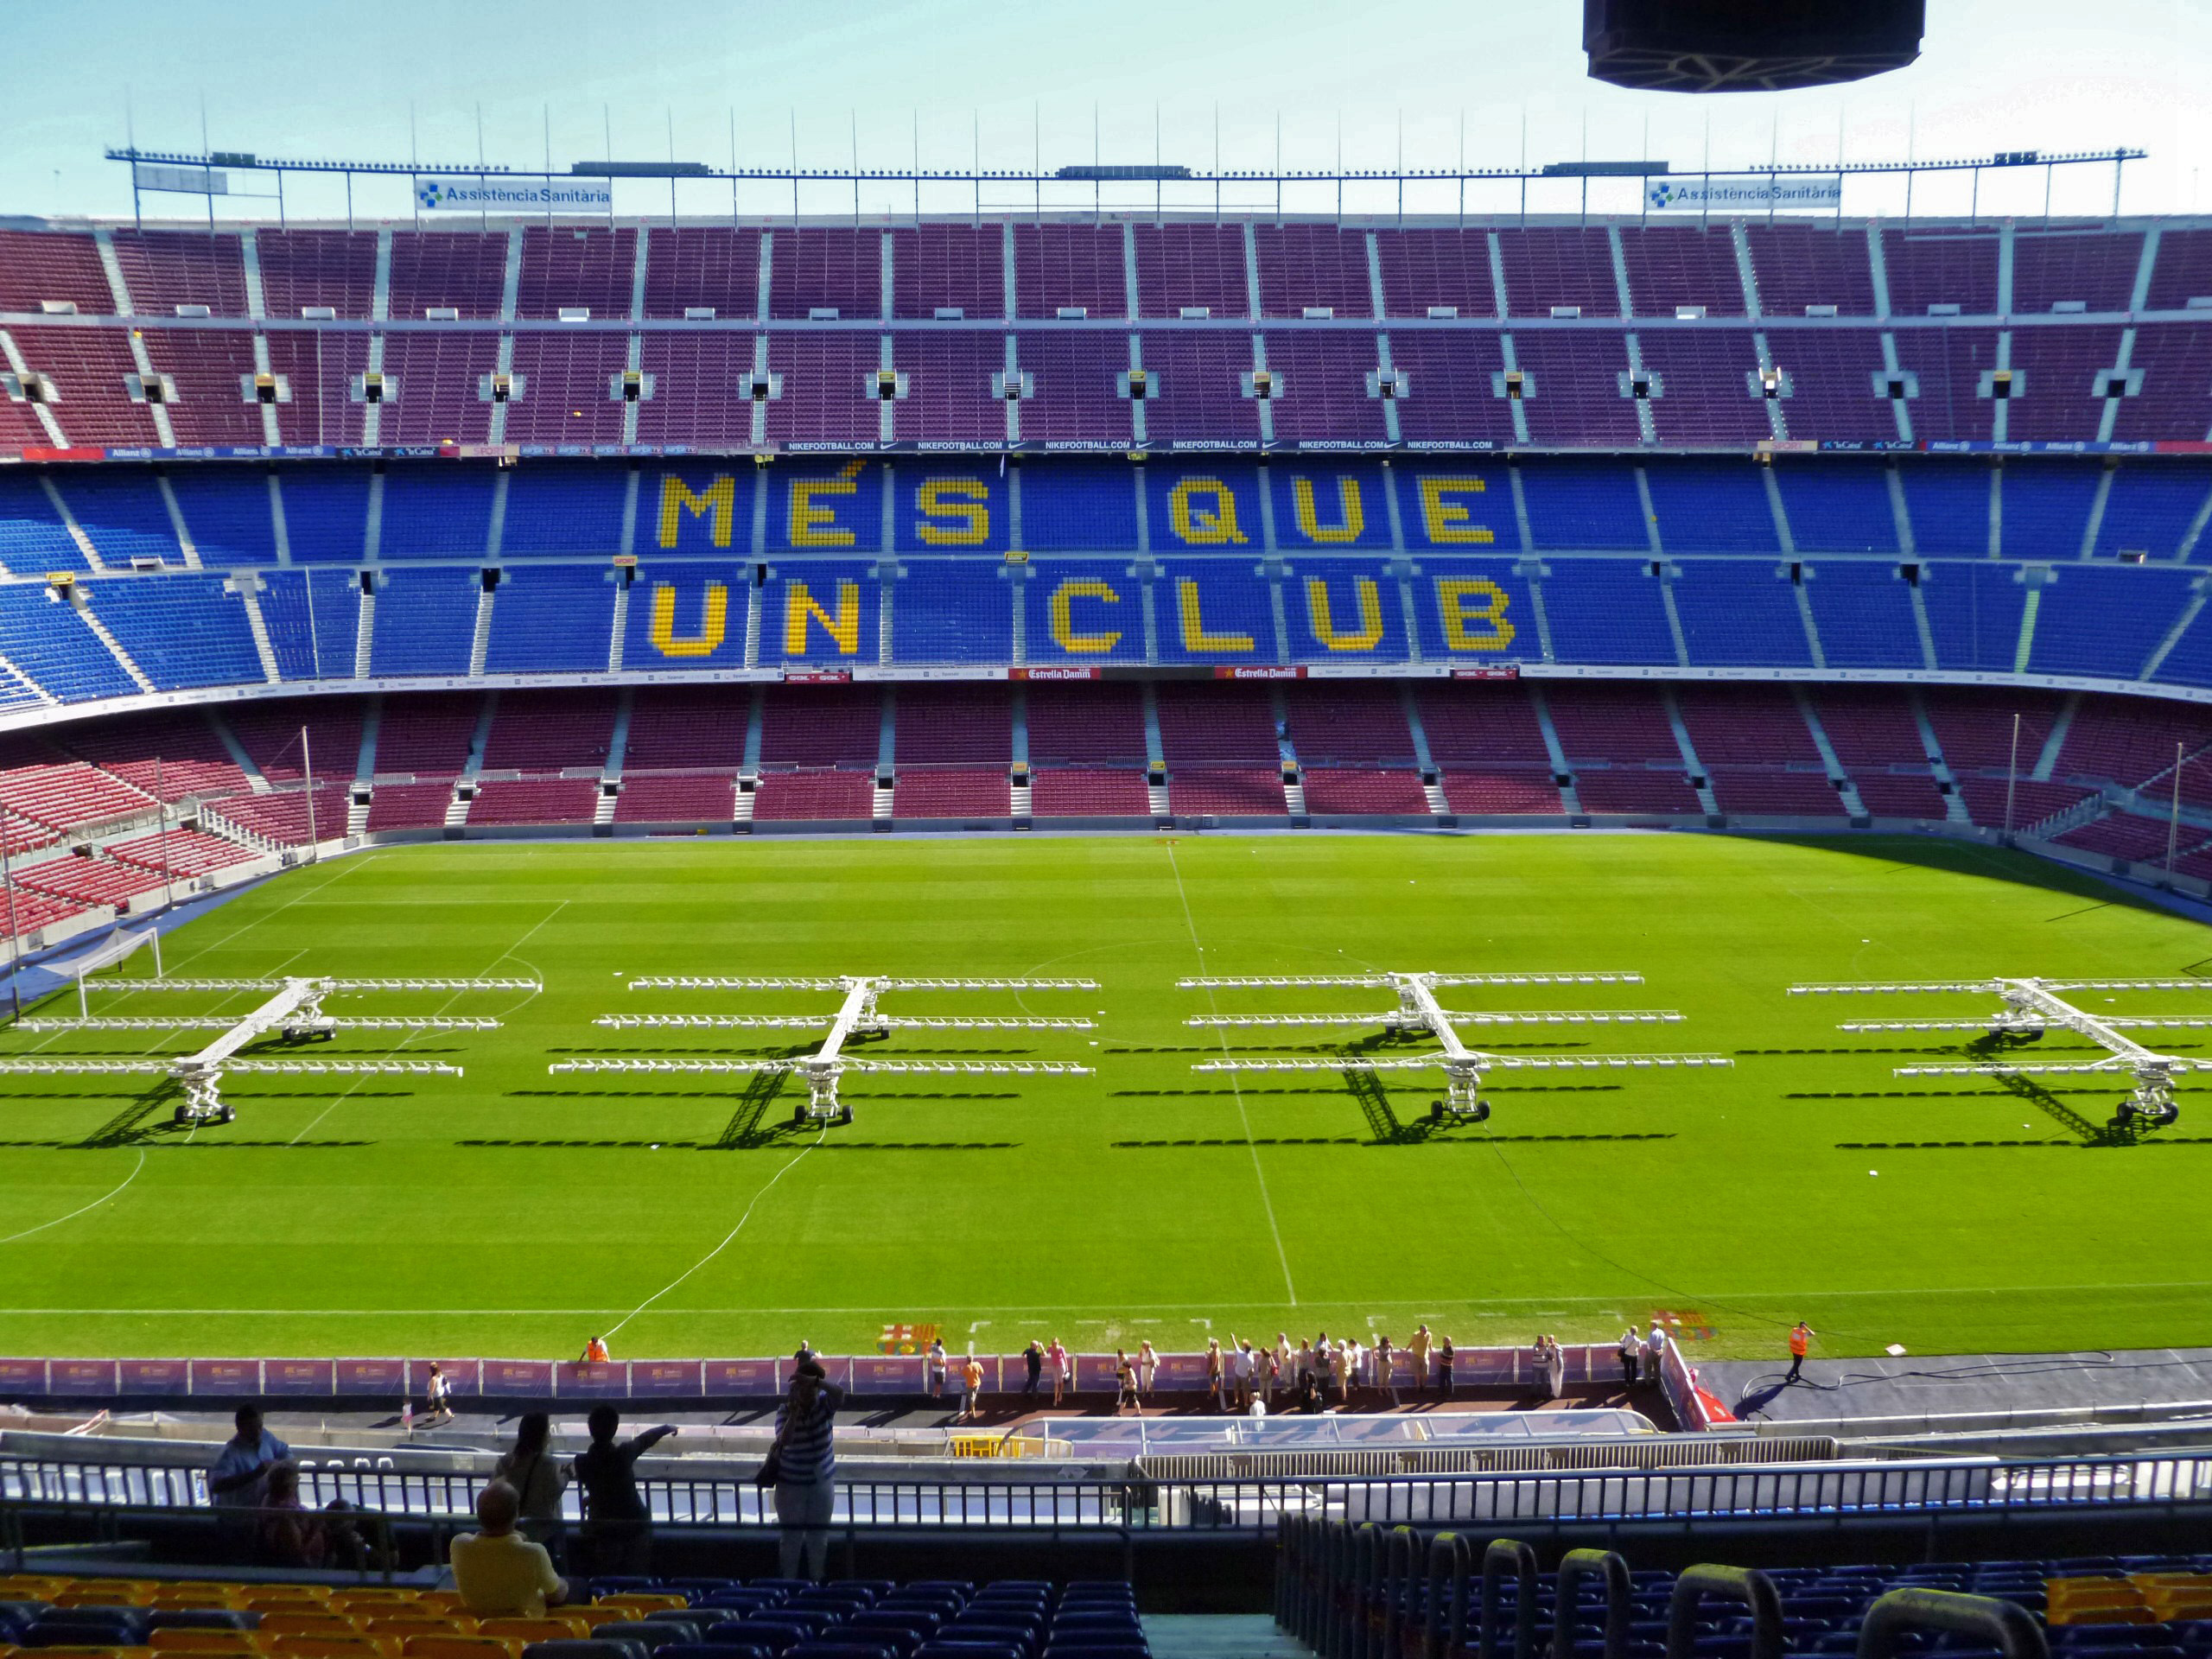 Vista interior del Nou Camp